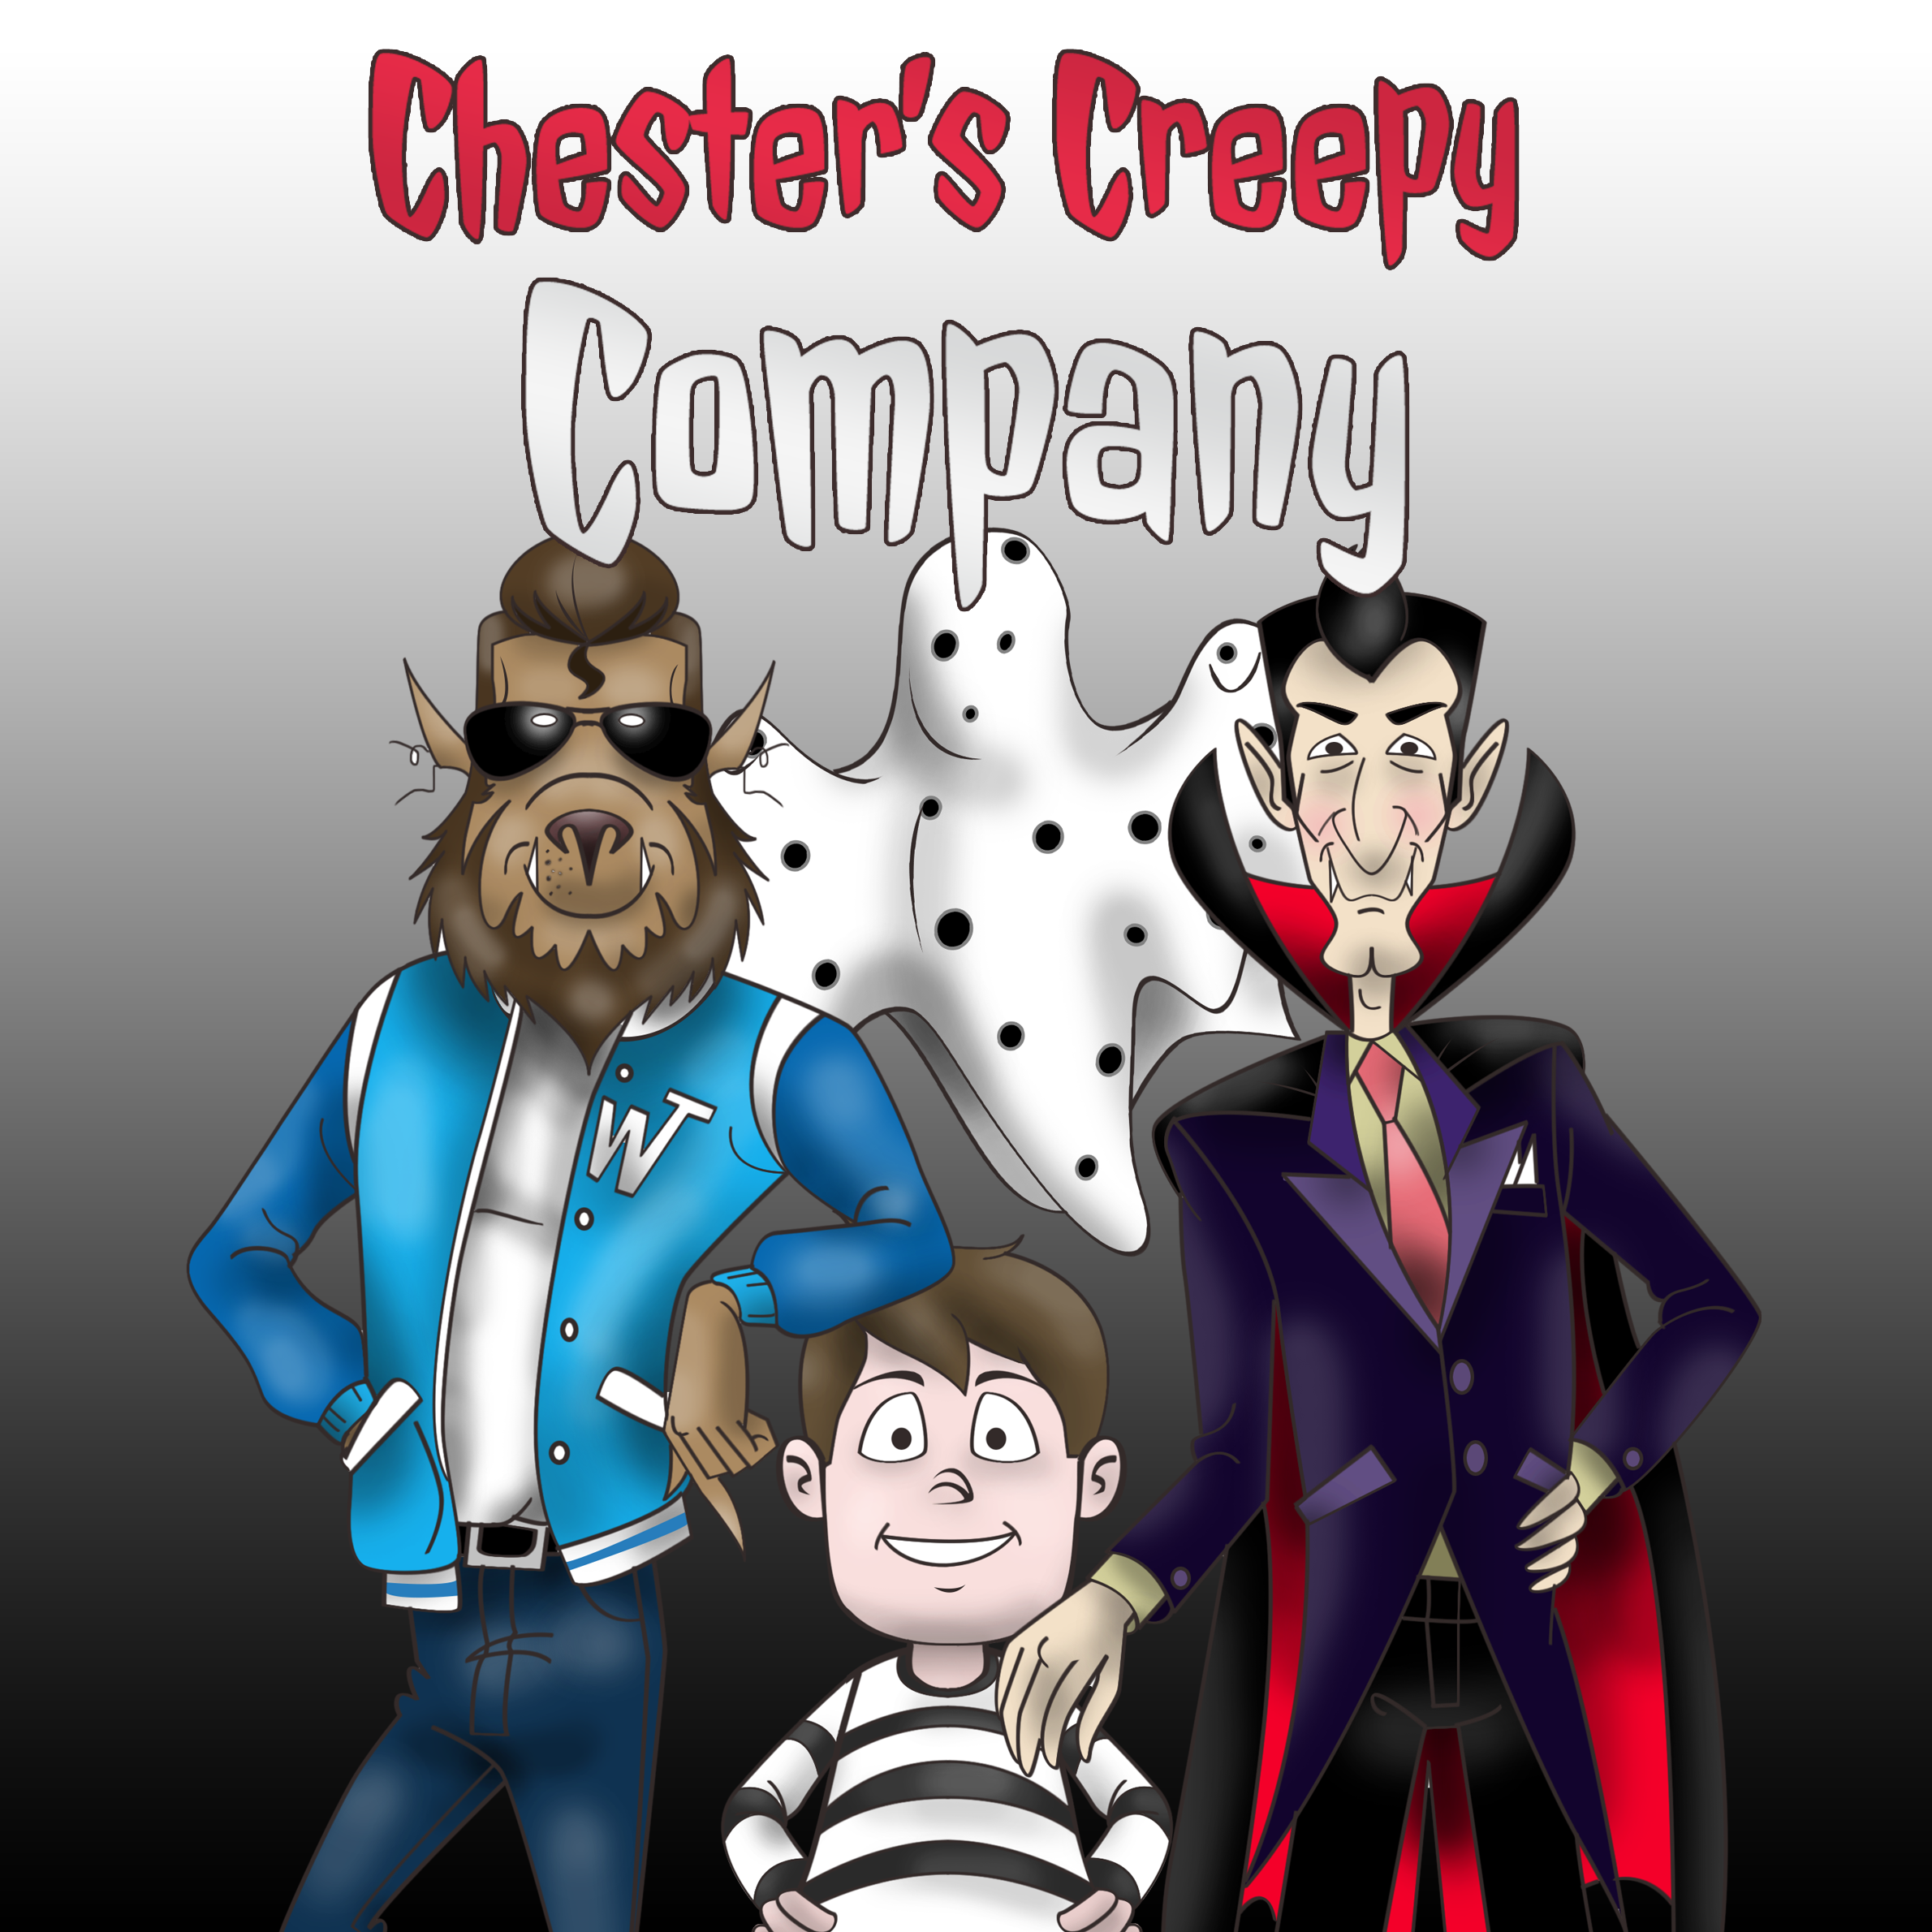 Chester's Creepy Company